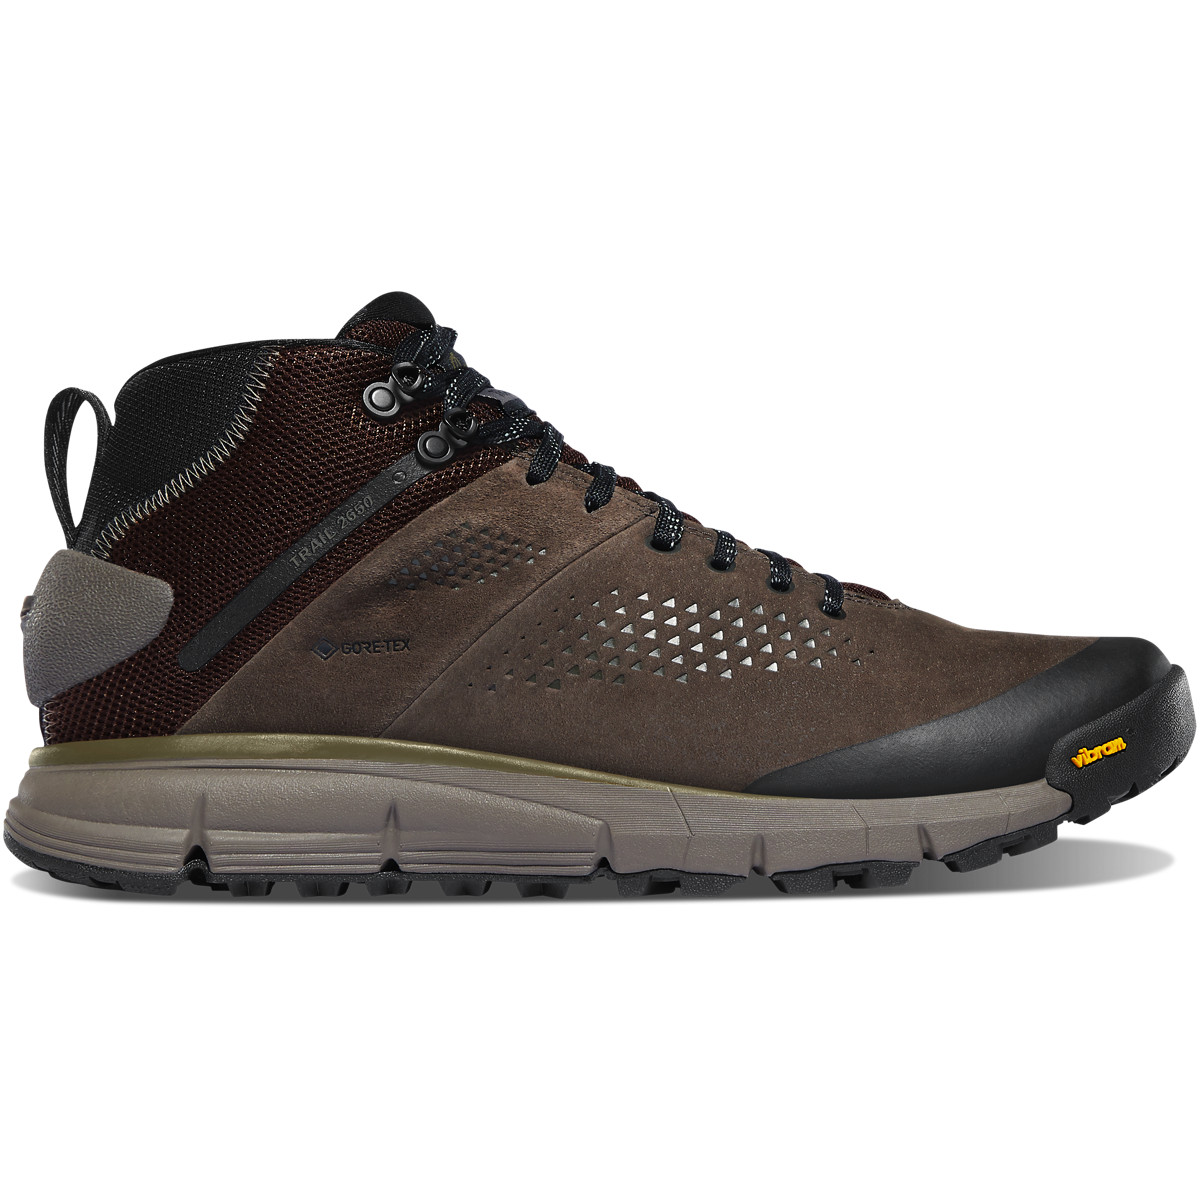 "Trail 2650 Mid 4"" Brown/Military Green GTX"